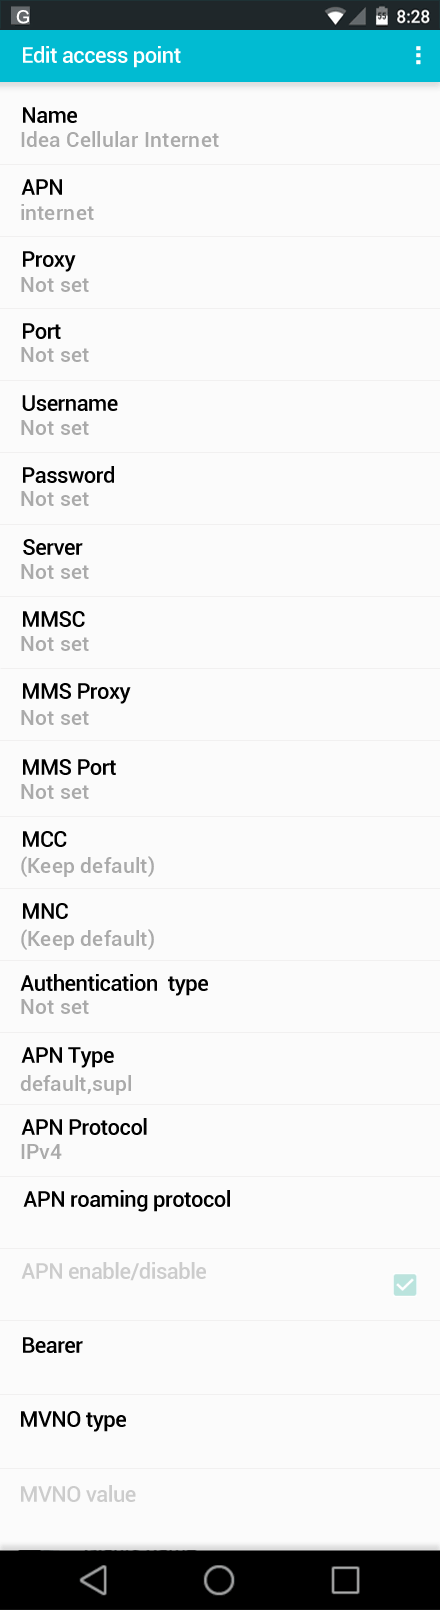 Idea Cellular Internet APN settings for Android screenshot